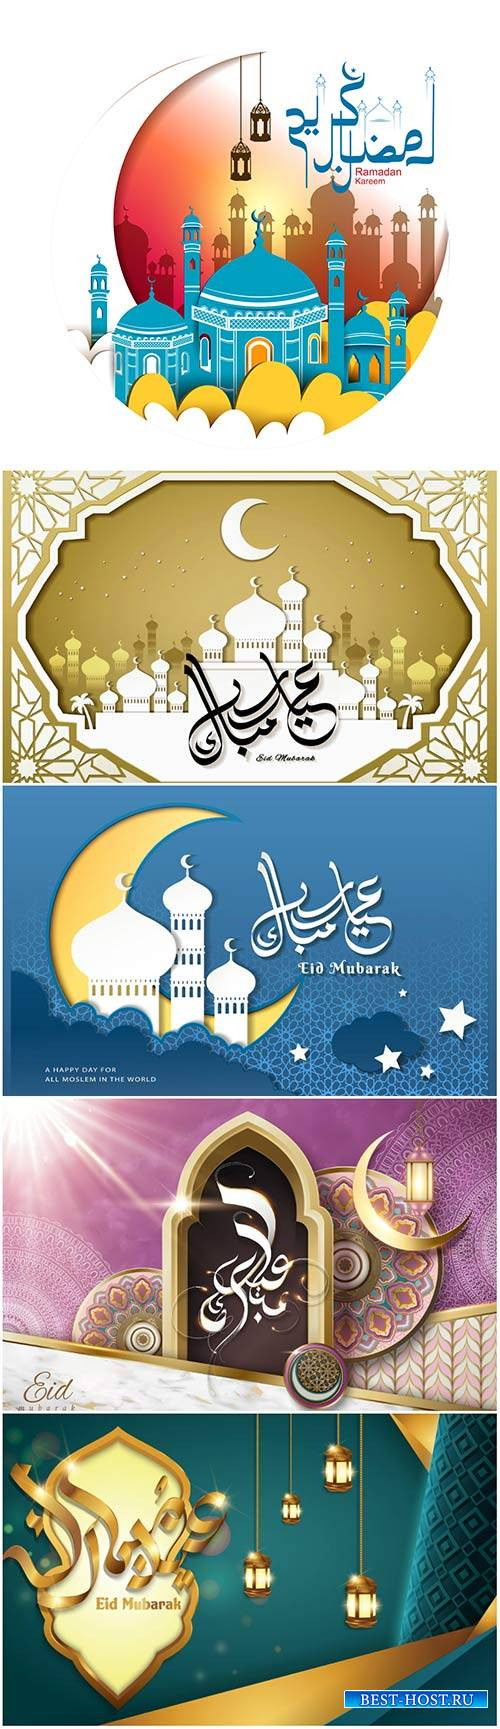 Islamic celebration background with text Ramadan Kareem, Eid Mubarak callig ...